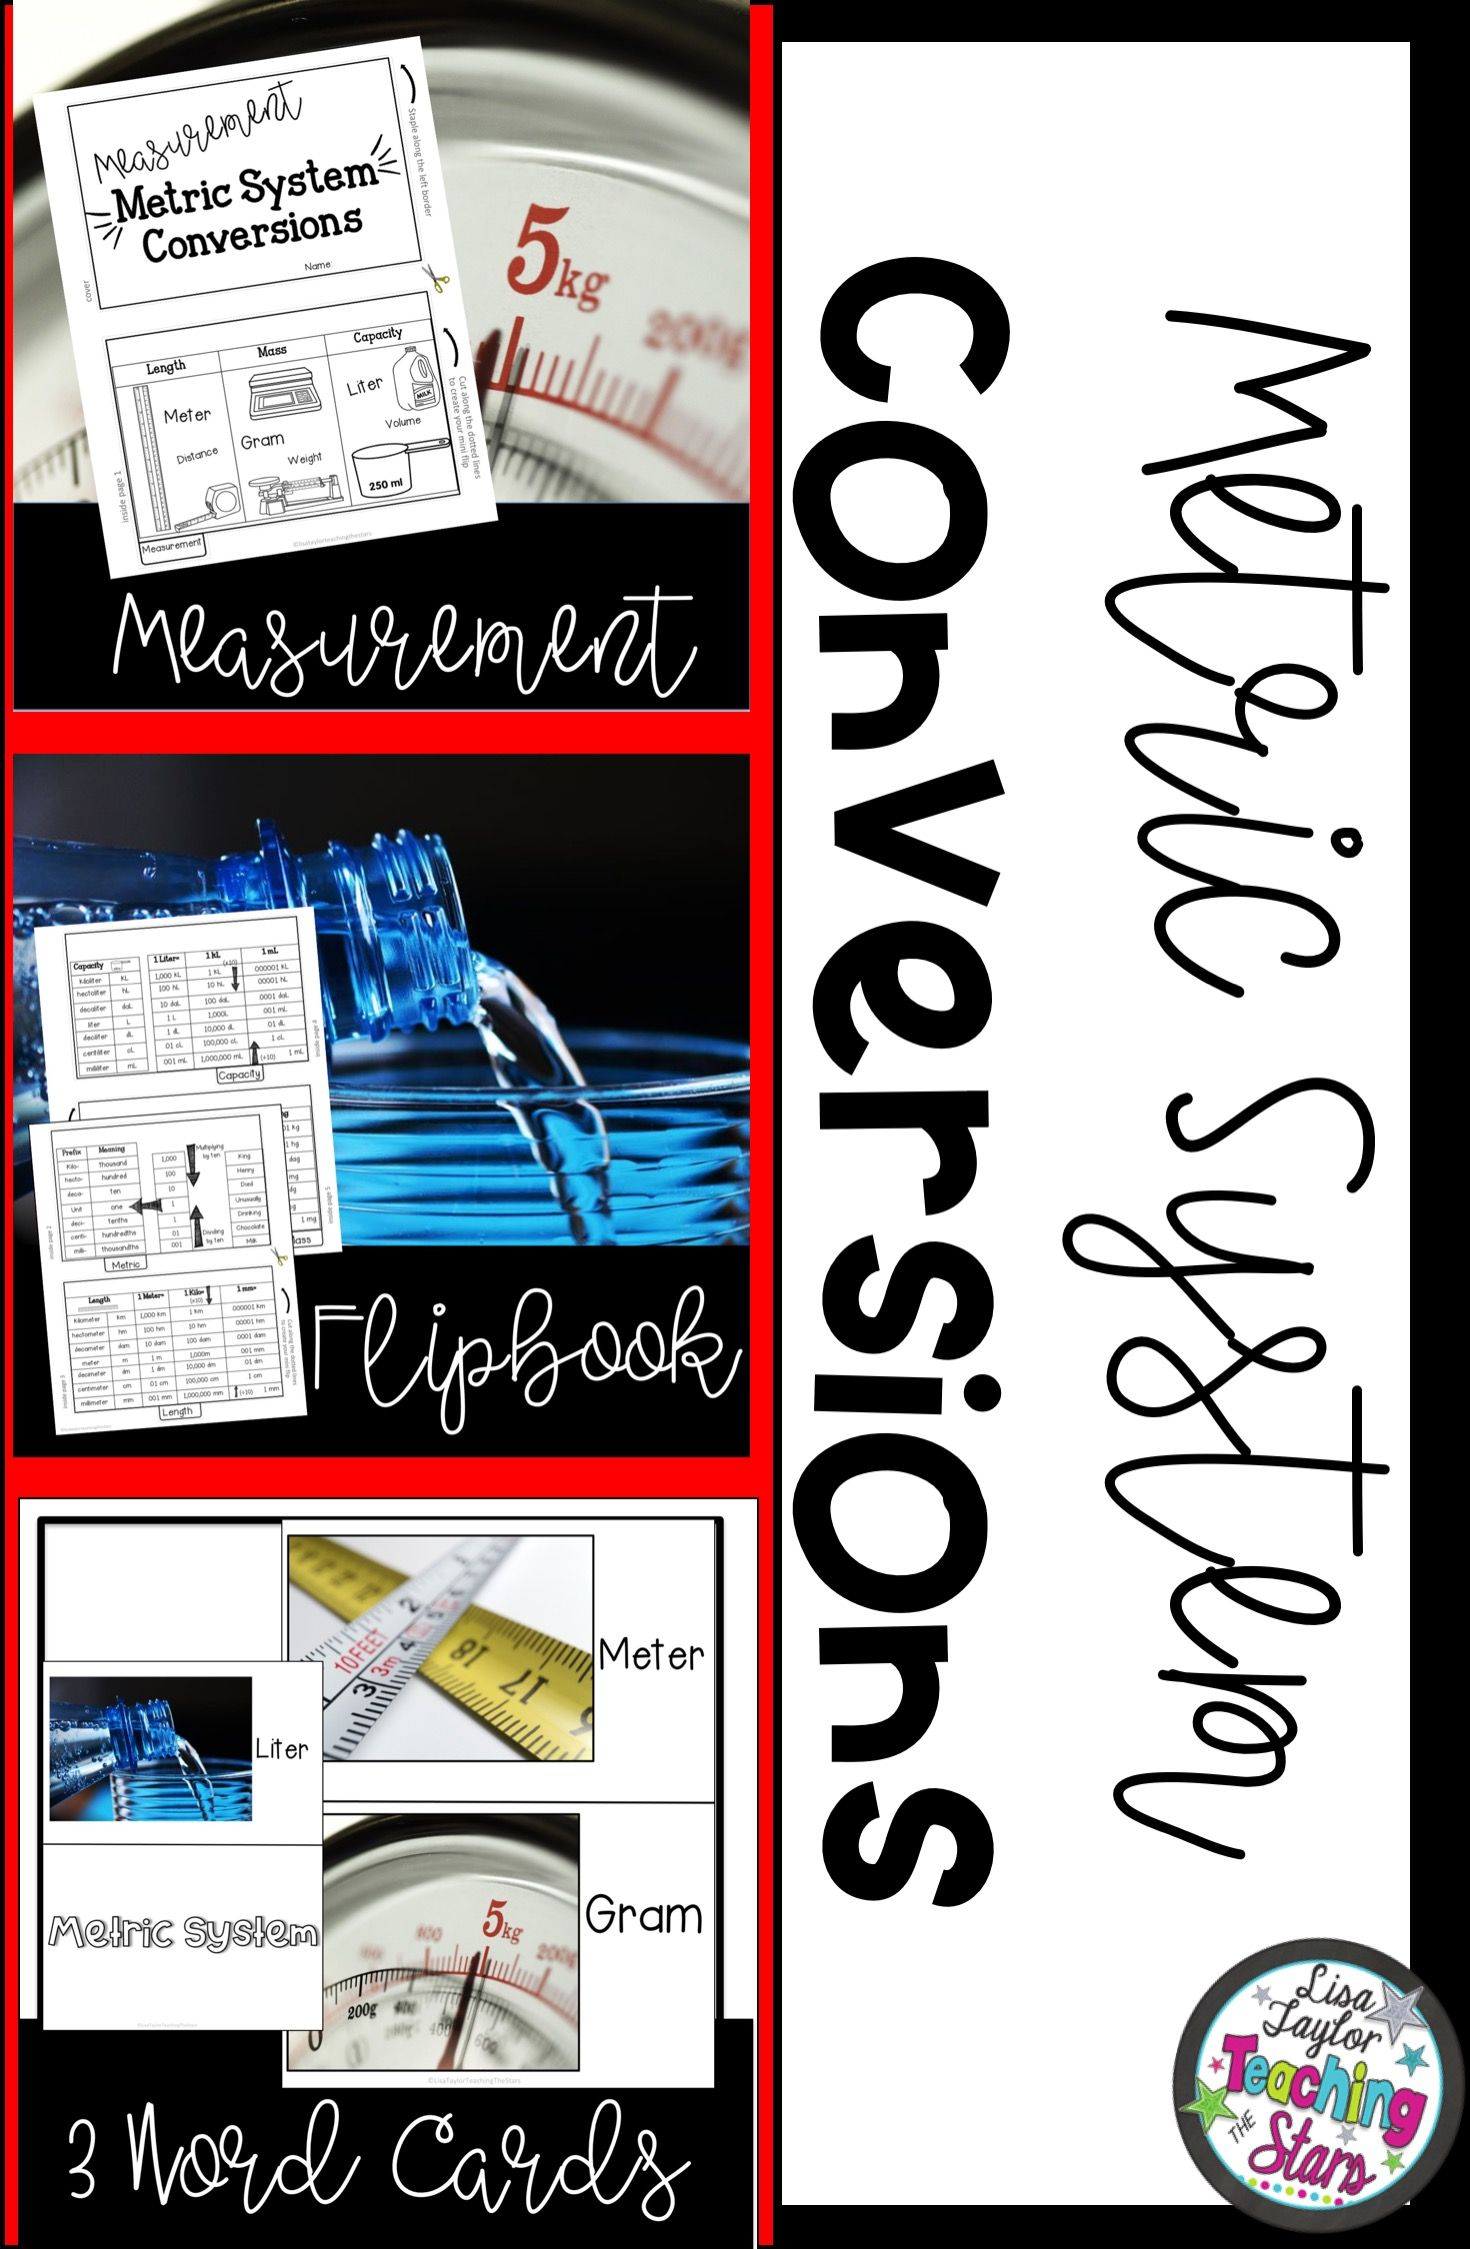 Measurement Flipbook Worksheet Is A Great Resource To Use